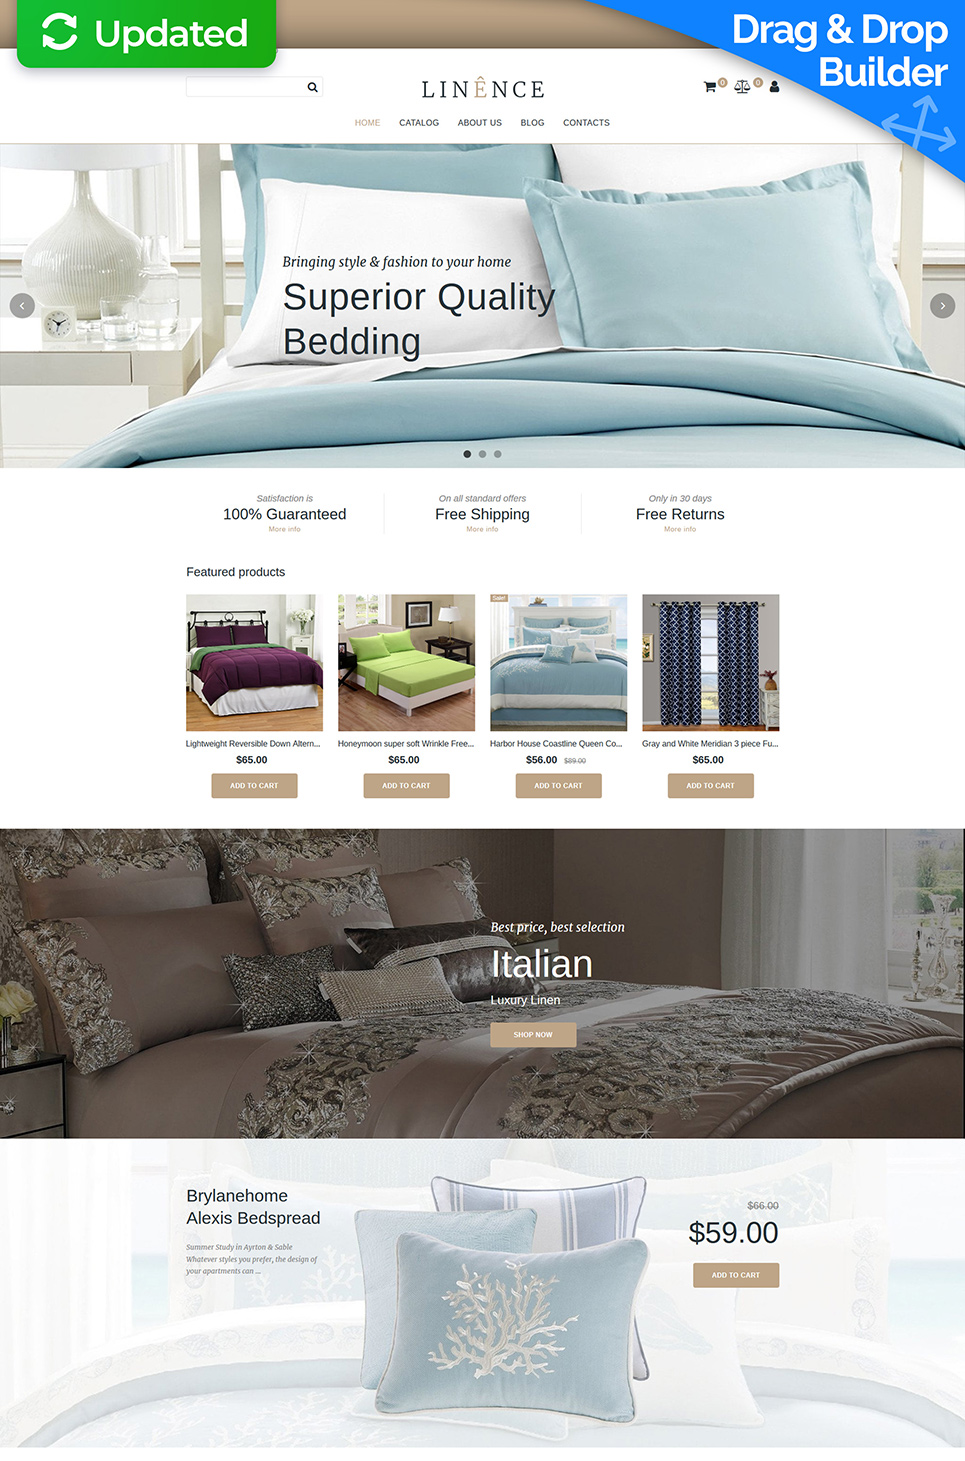 Website Design Template 74816 - store online ecommerce comforter set sets sheets covers luxury cotton wholesale satin fabric material